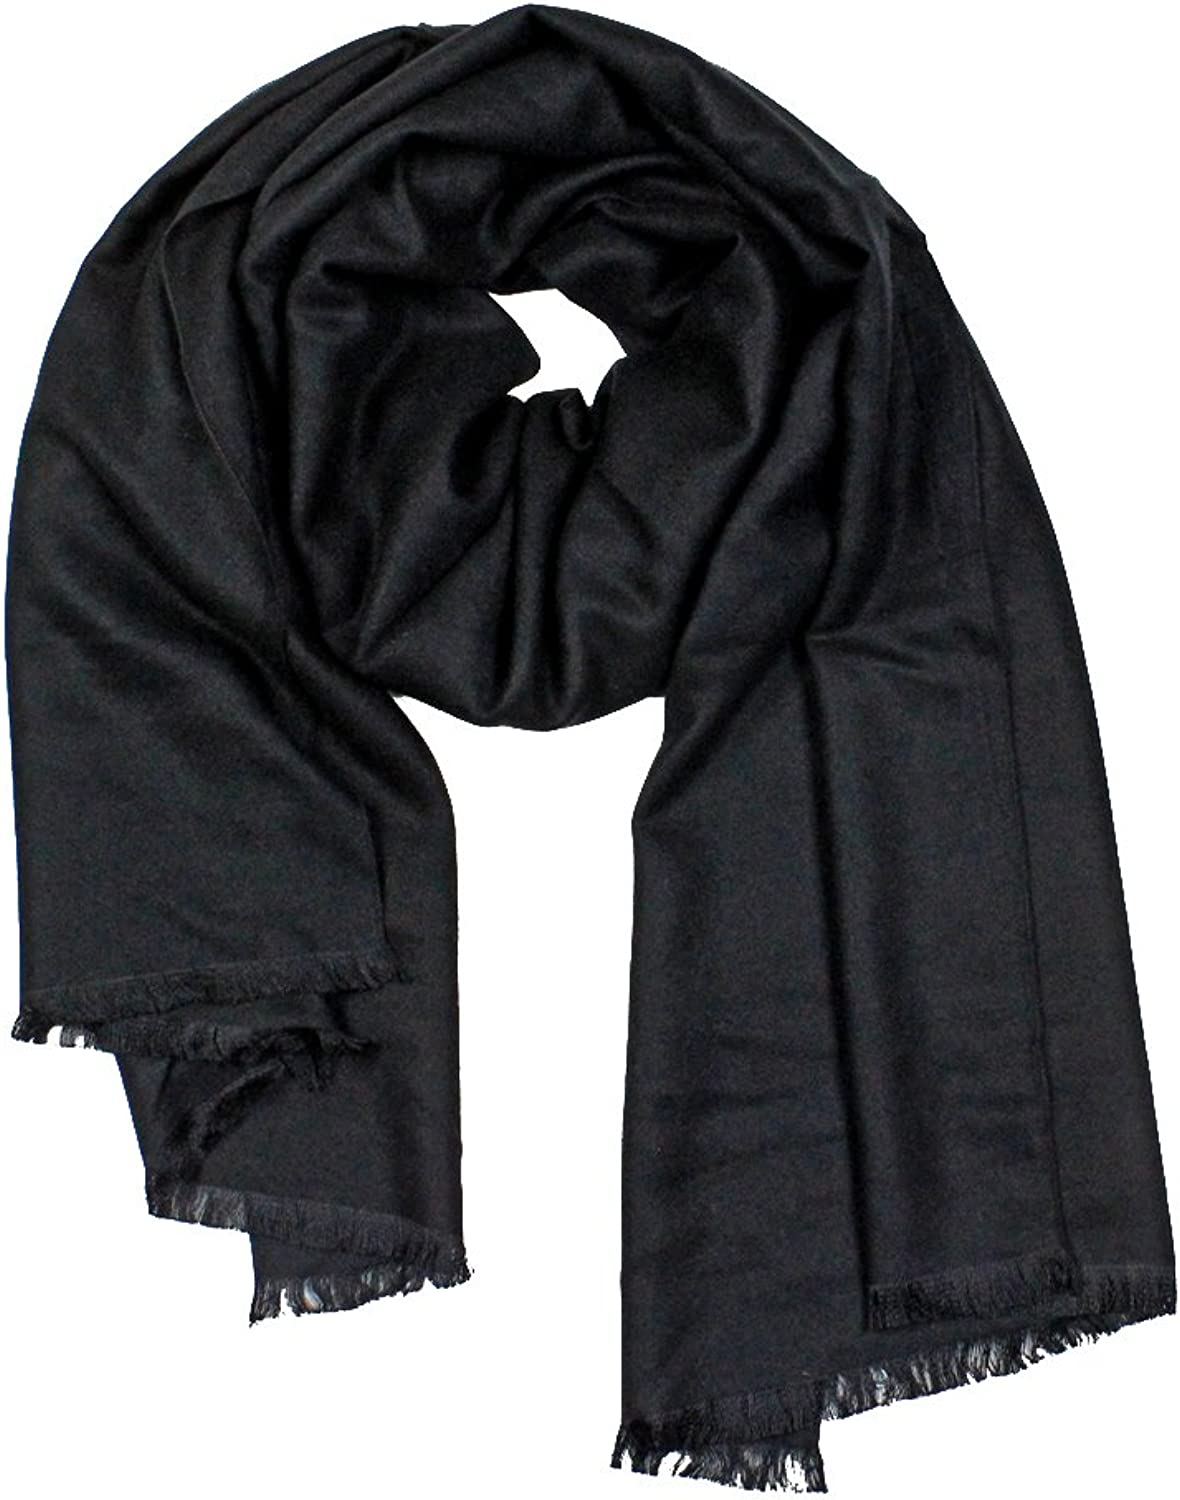 StarGo All Season Fashion Lightweight Cotton Women Wrap Shawl Scarves in Solid colors